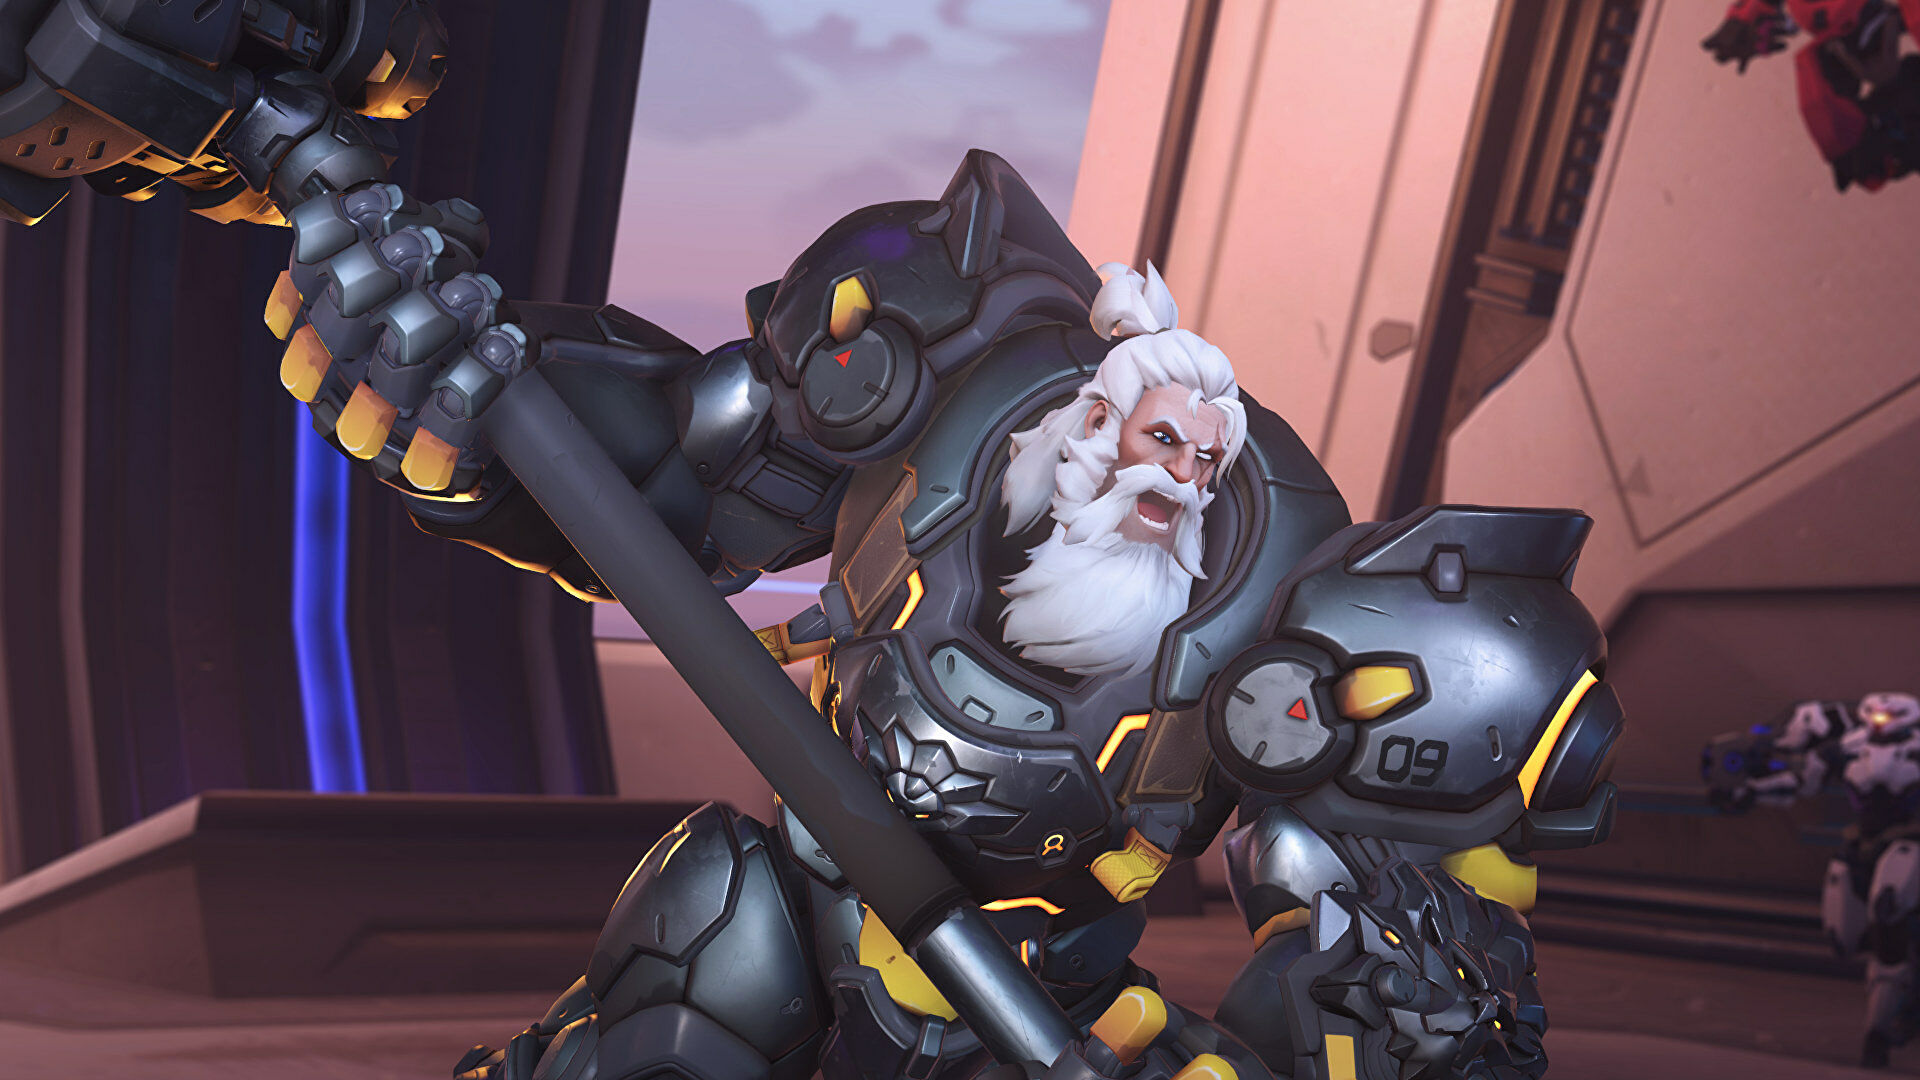 Tanks are getting some big changes in Overwatch 2